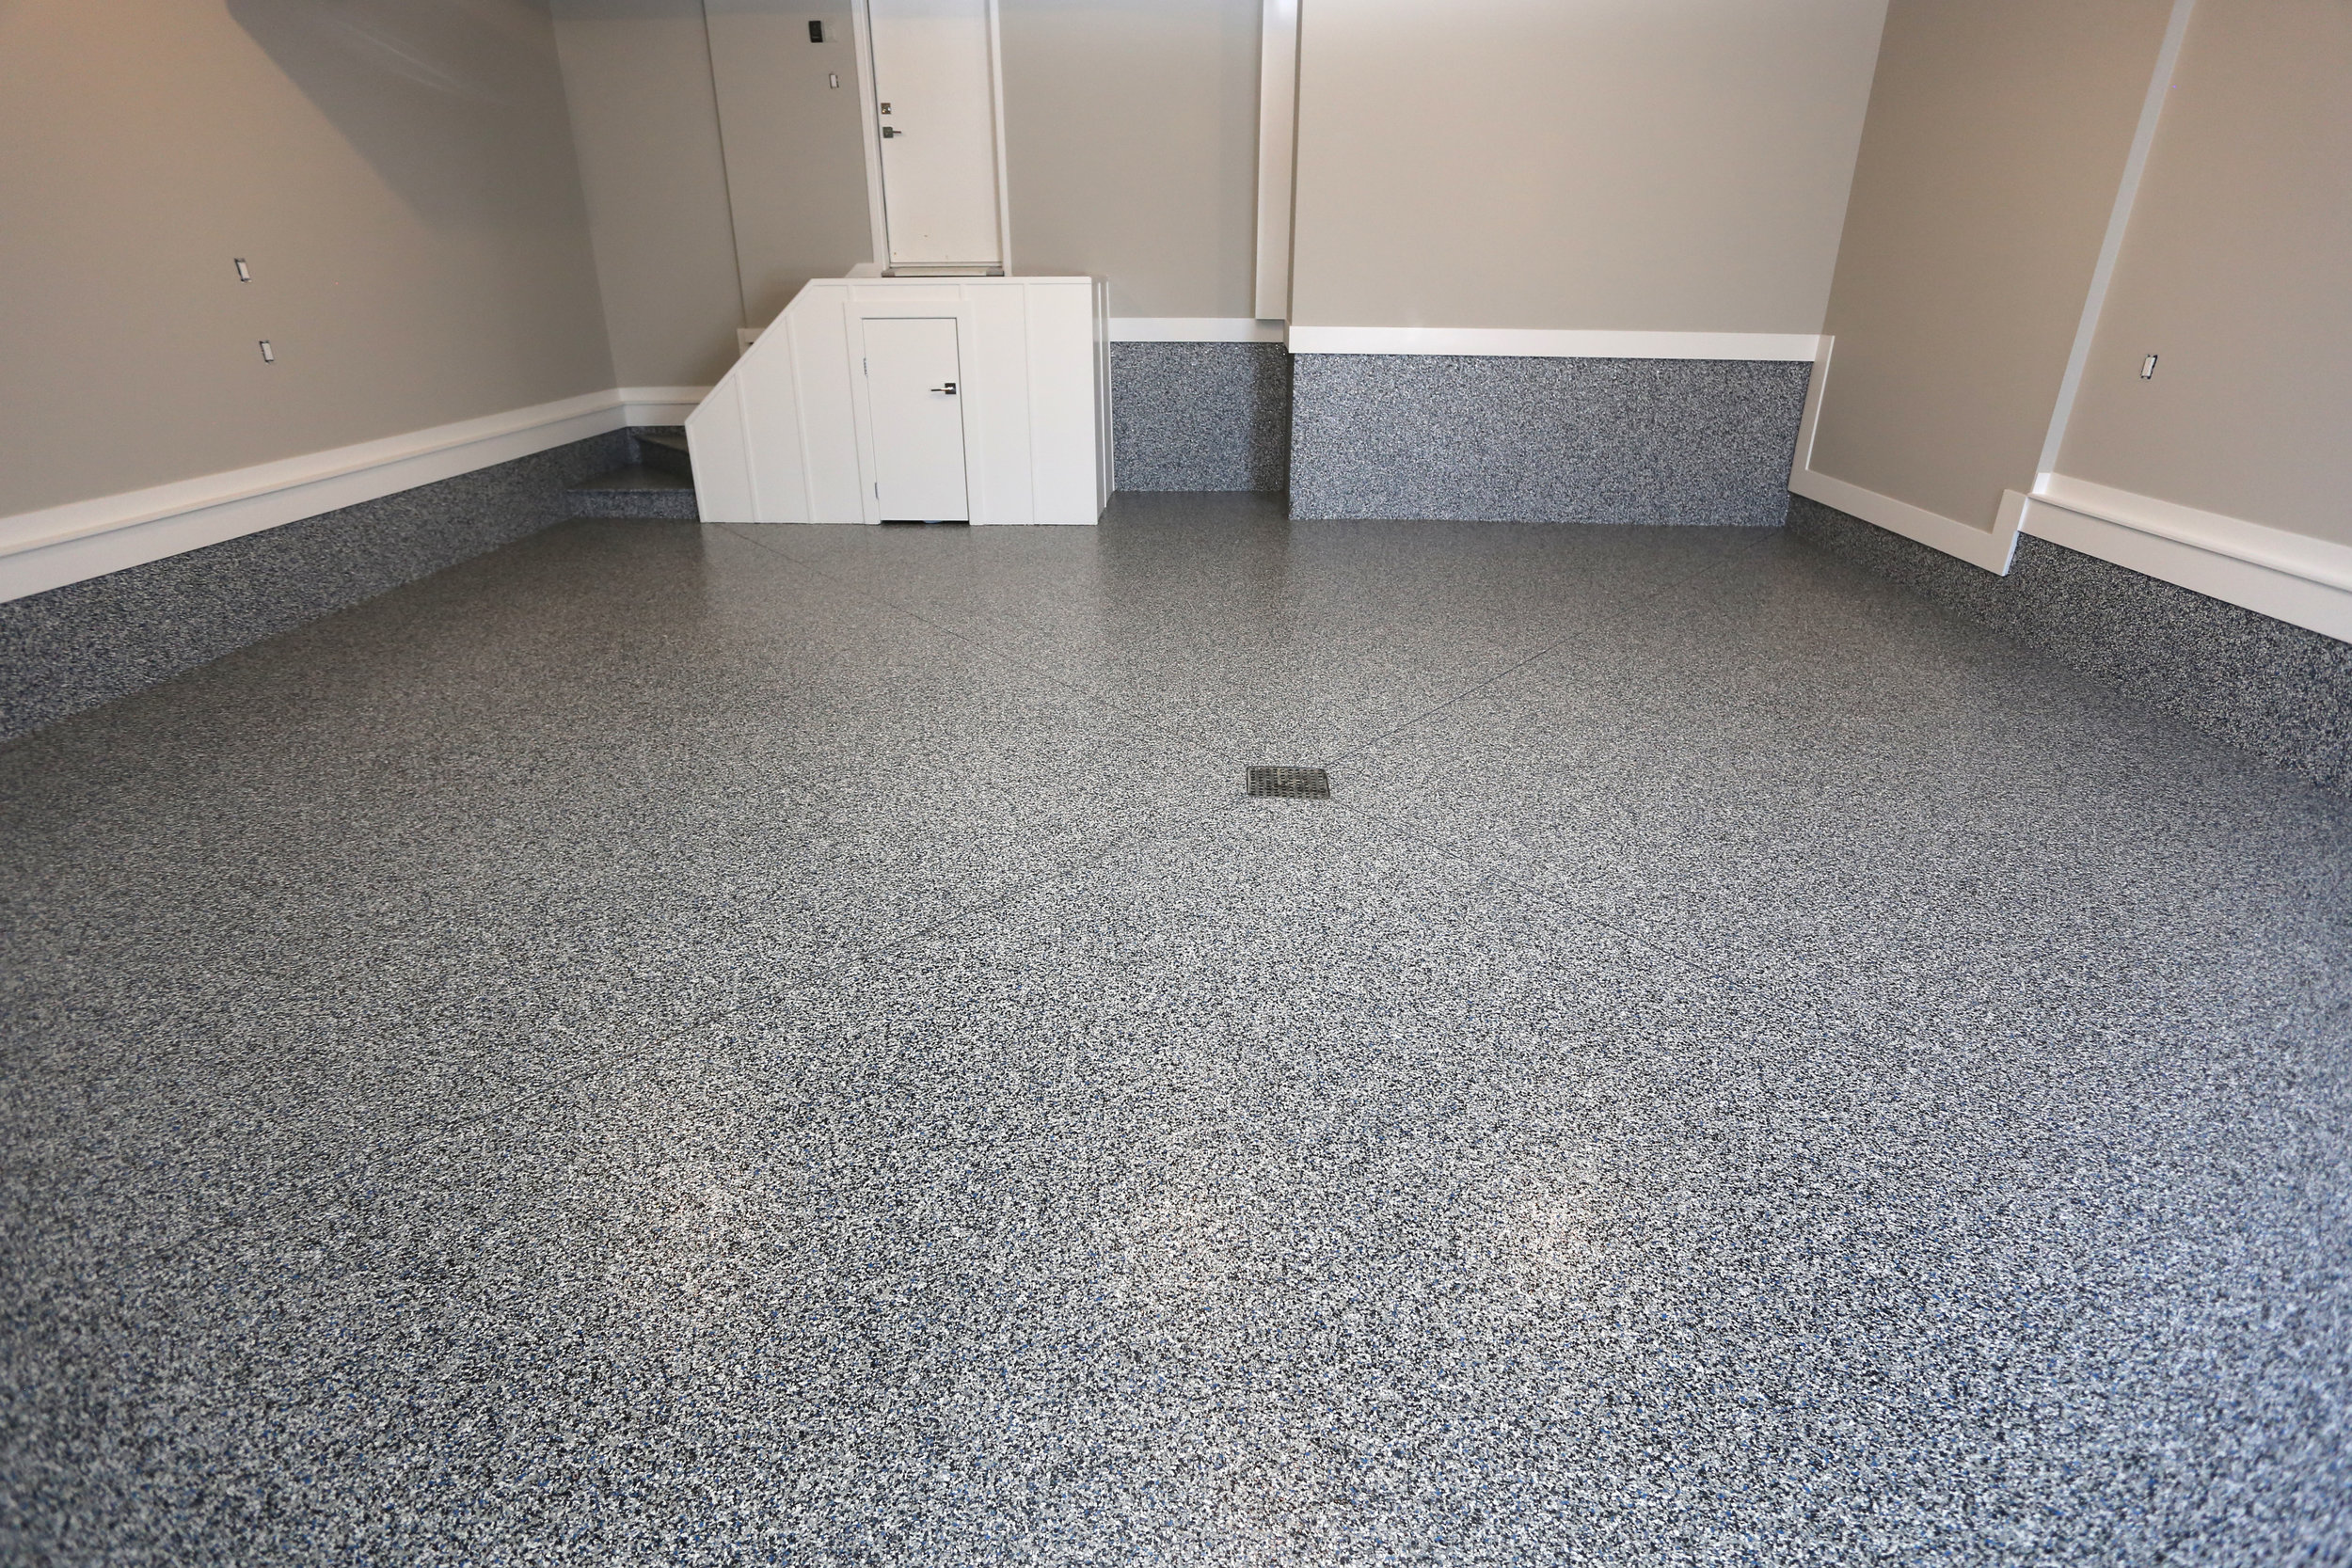 Polyaspartic Garage Floor Coating, Stem Wall - Complete